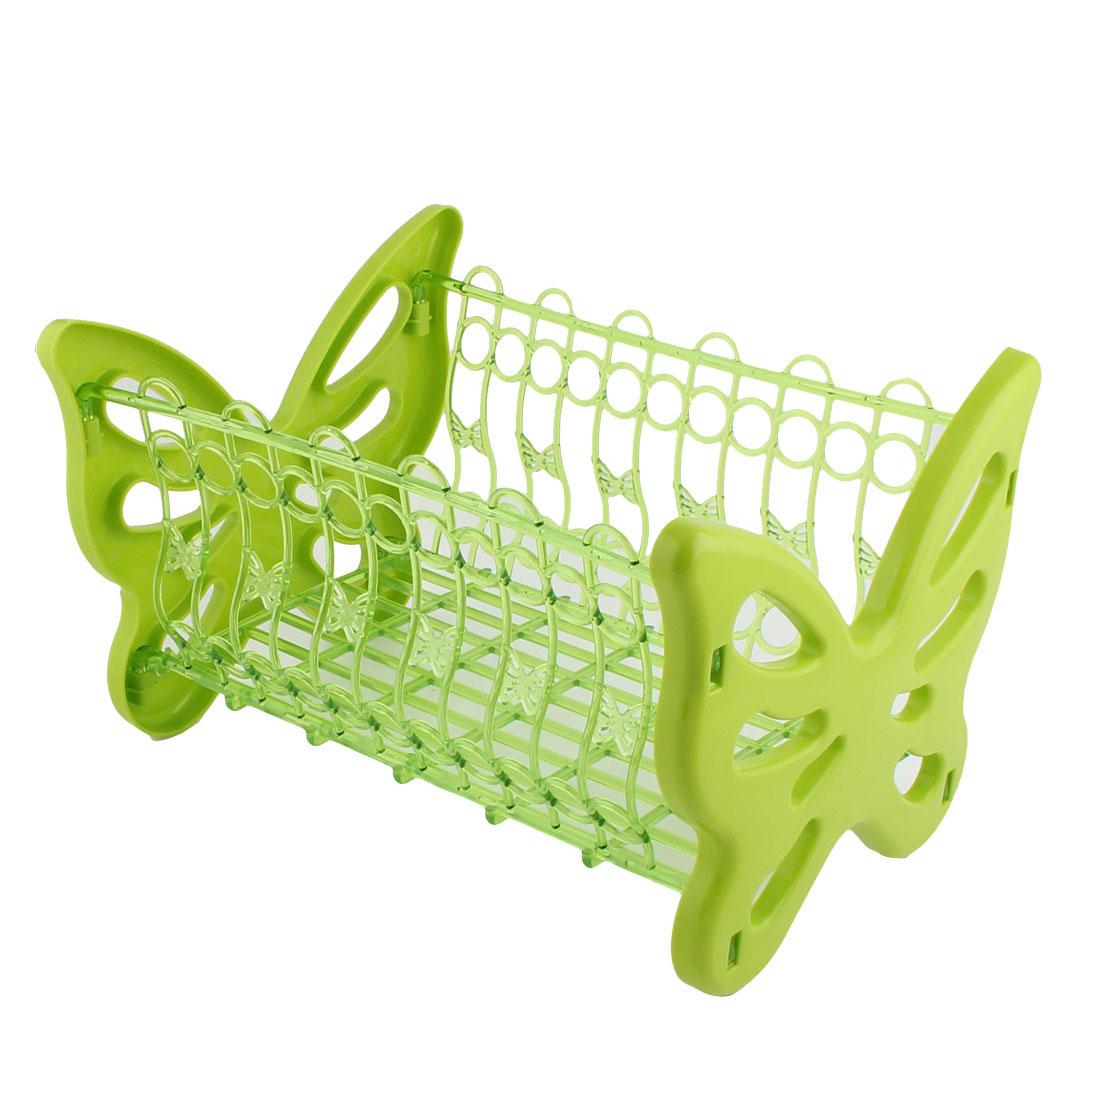 Household Bathroom Butterfly Design PP Hollow Out Storage Rack Basket Holder Green